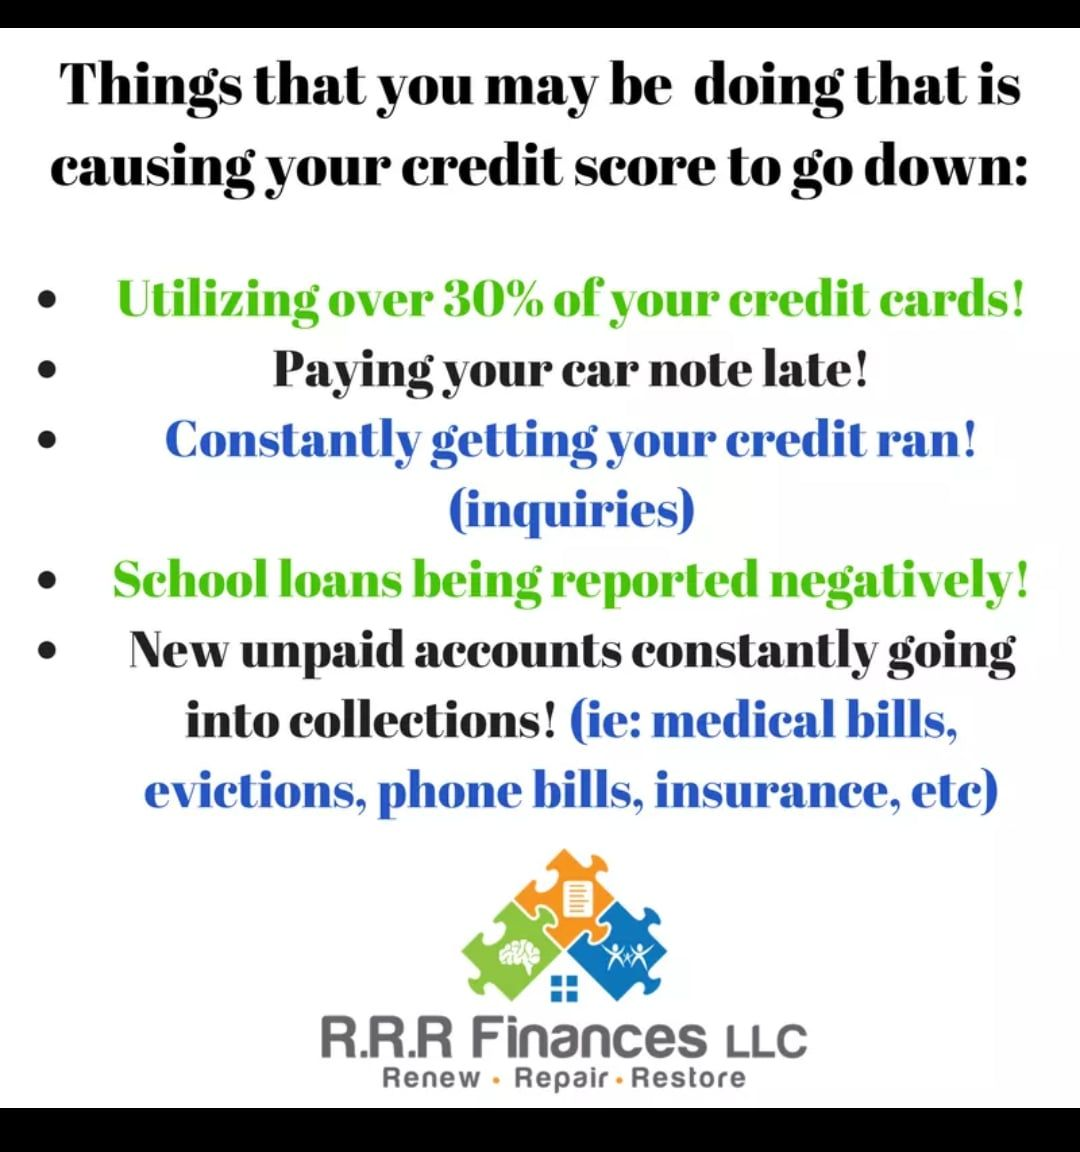 RRR Finances LLC Things you may be doing that is casusing your credit score to go down.jpg